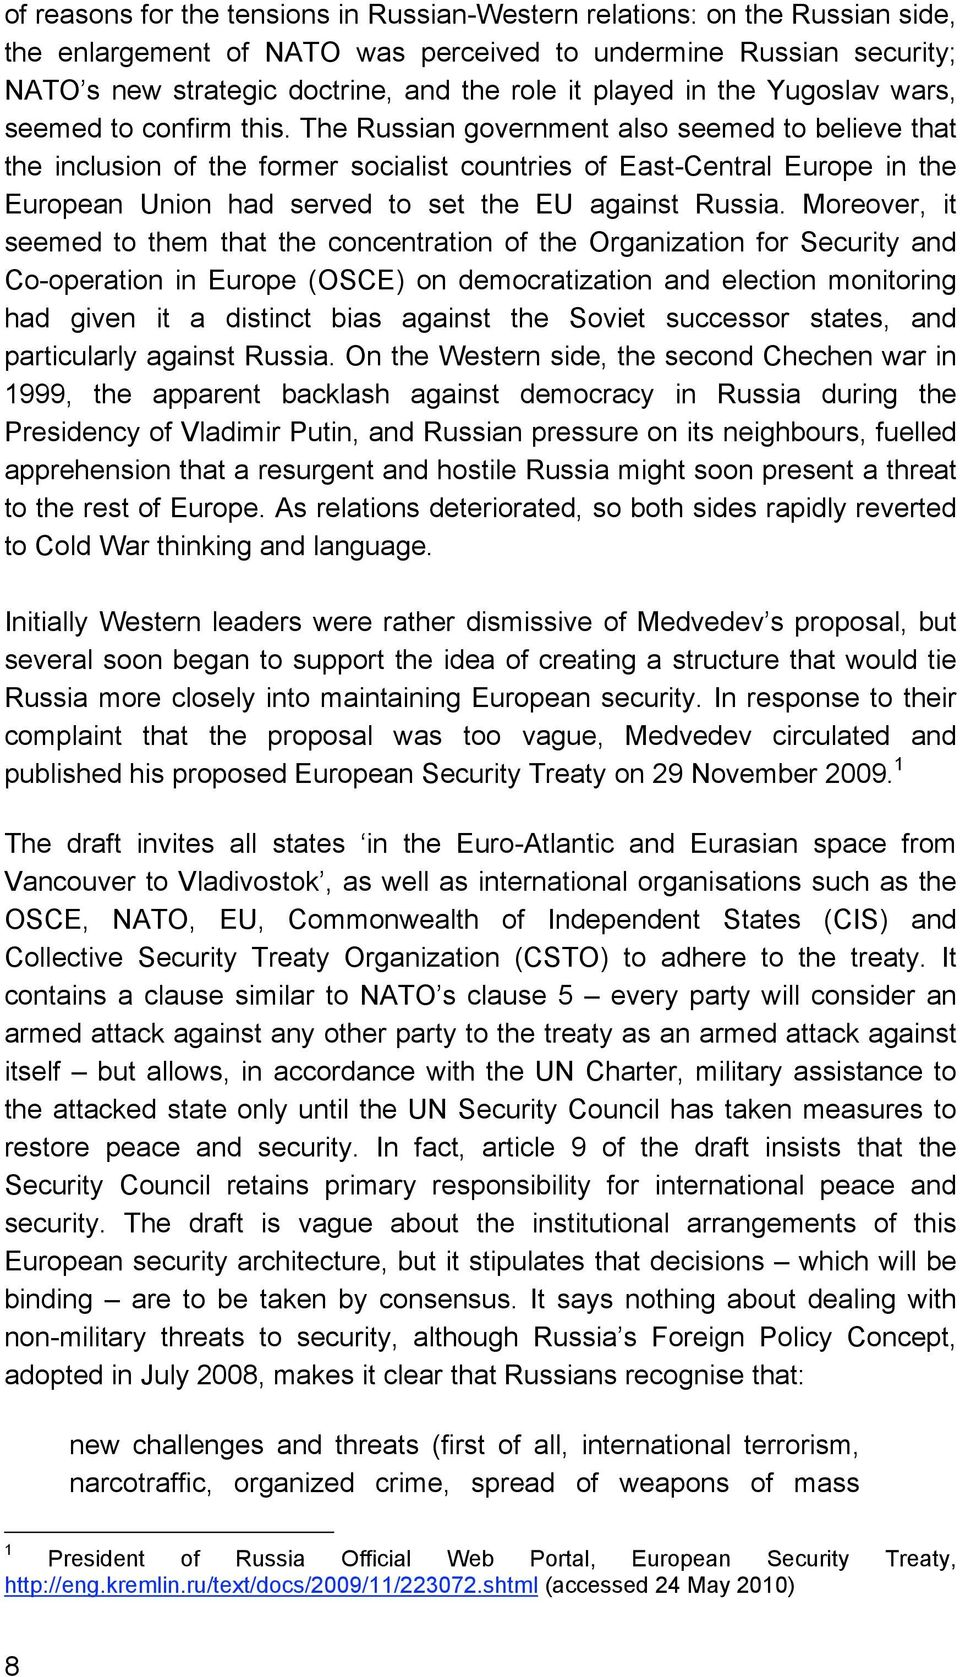 The Russian government also seemed to believe that the inclusion of the former socialist countries of East-Central Europe in the European Union had served to set the EU against Russia.